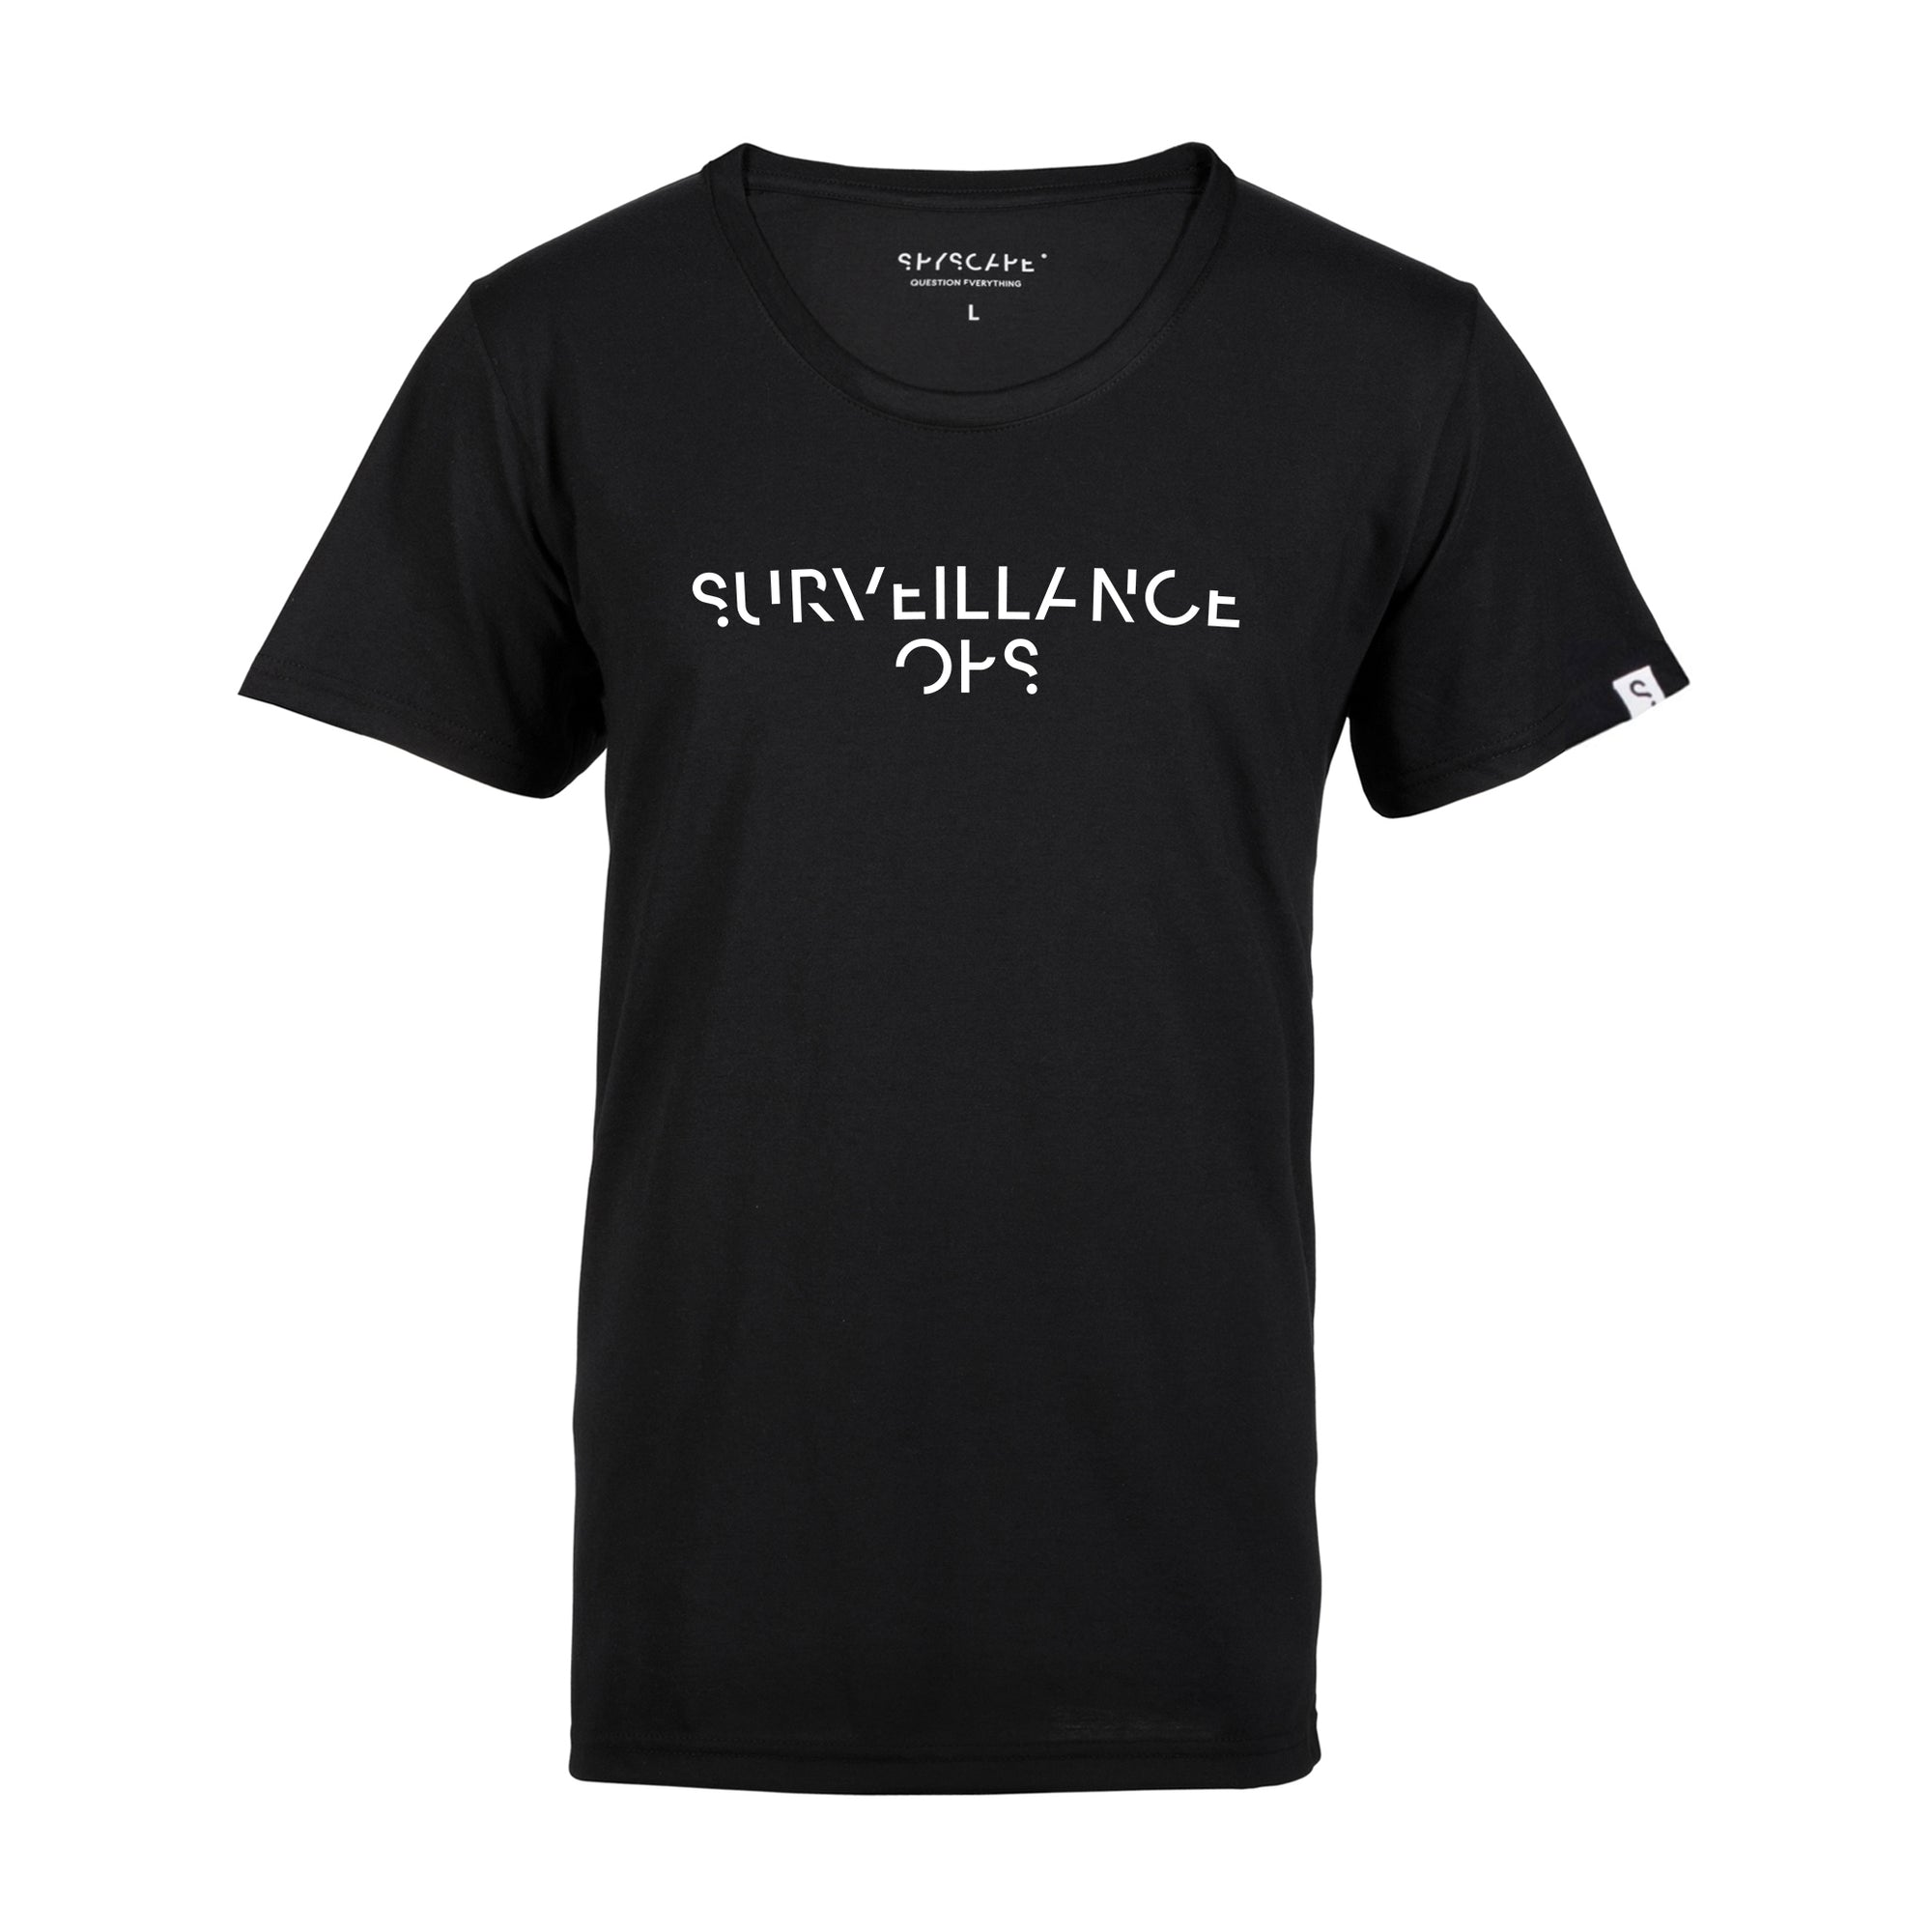 SPYSCAPE Surveillance Ops T-Shirt with Hidden Zip Pocket